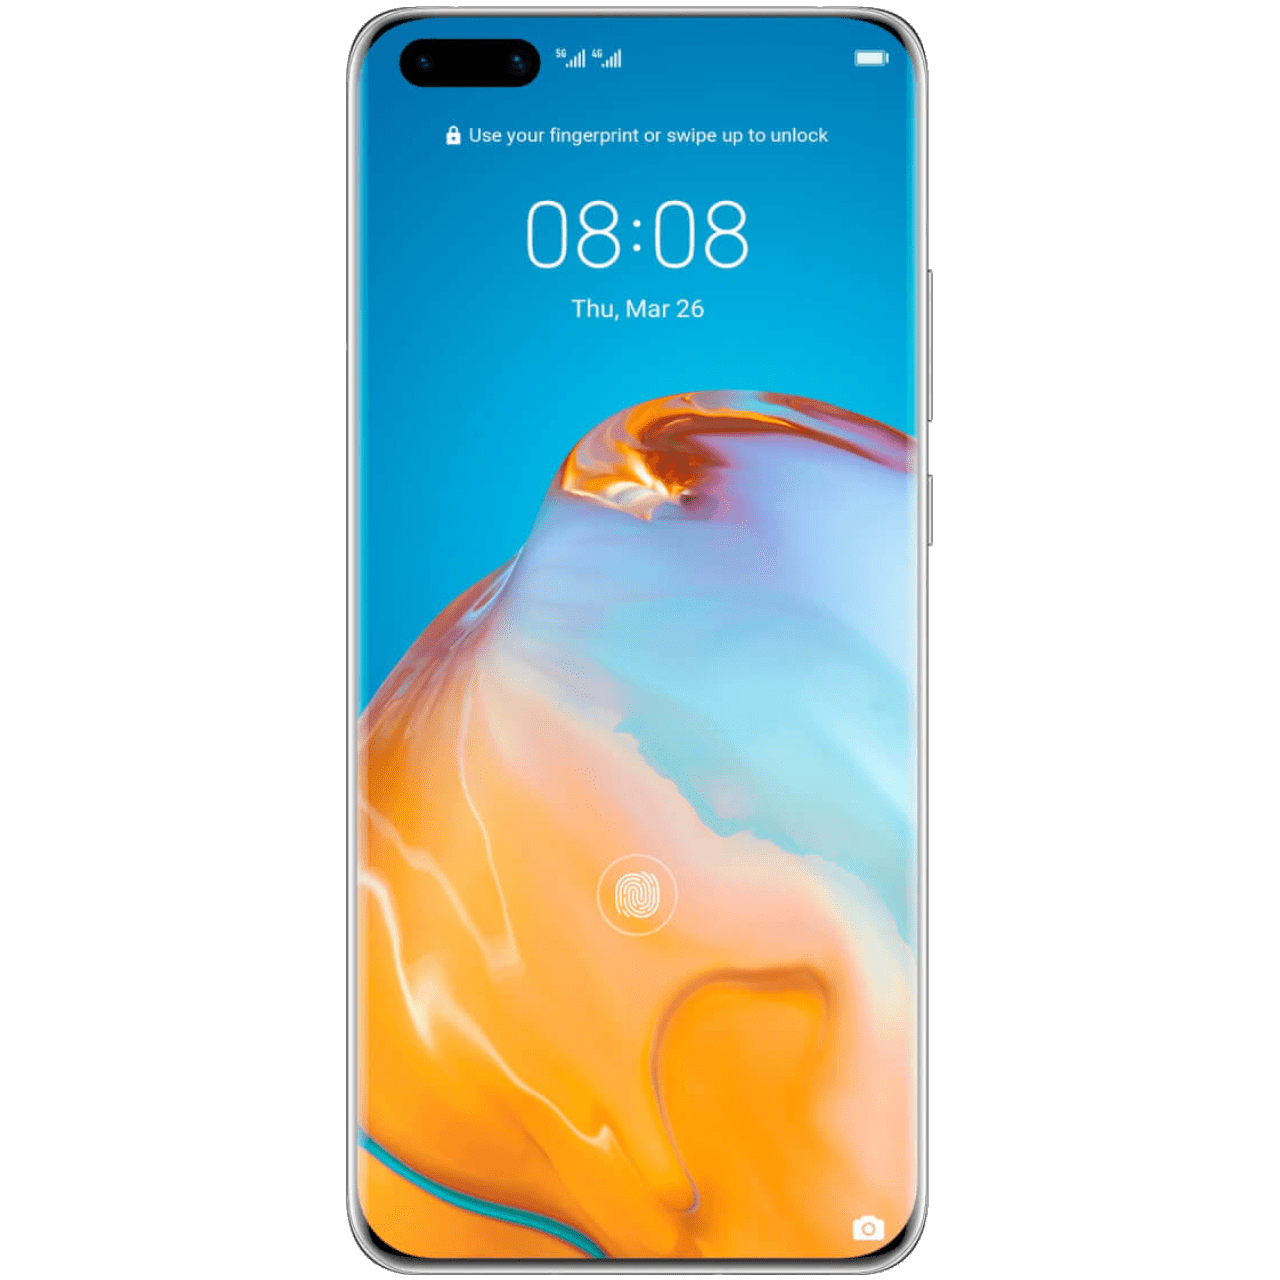 https://images.frandroid.com/wp-content/uploads/2020/03/huawei-p40-pro-frandroid-2020.png